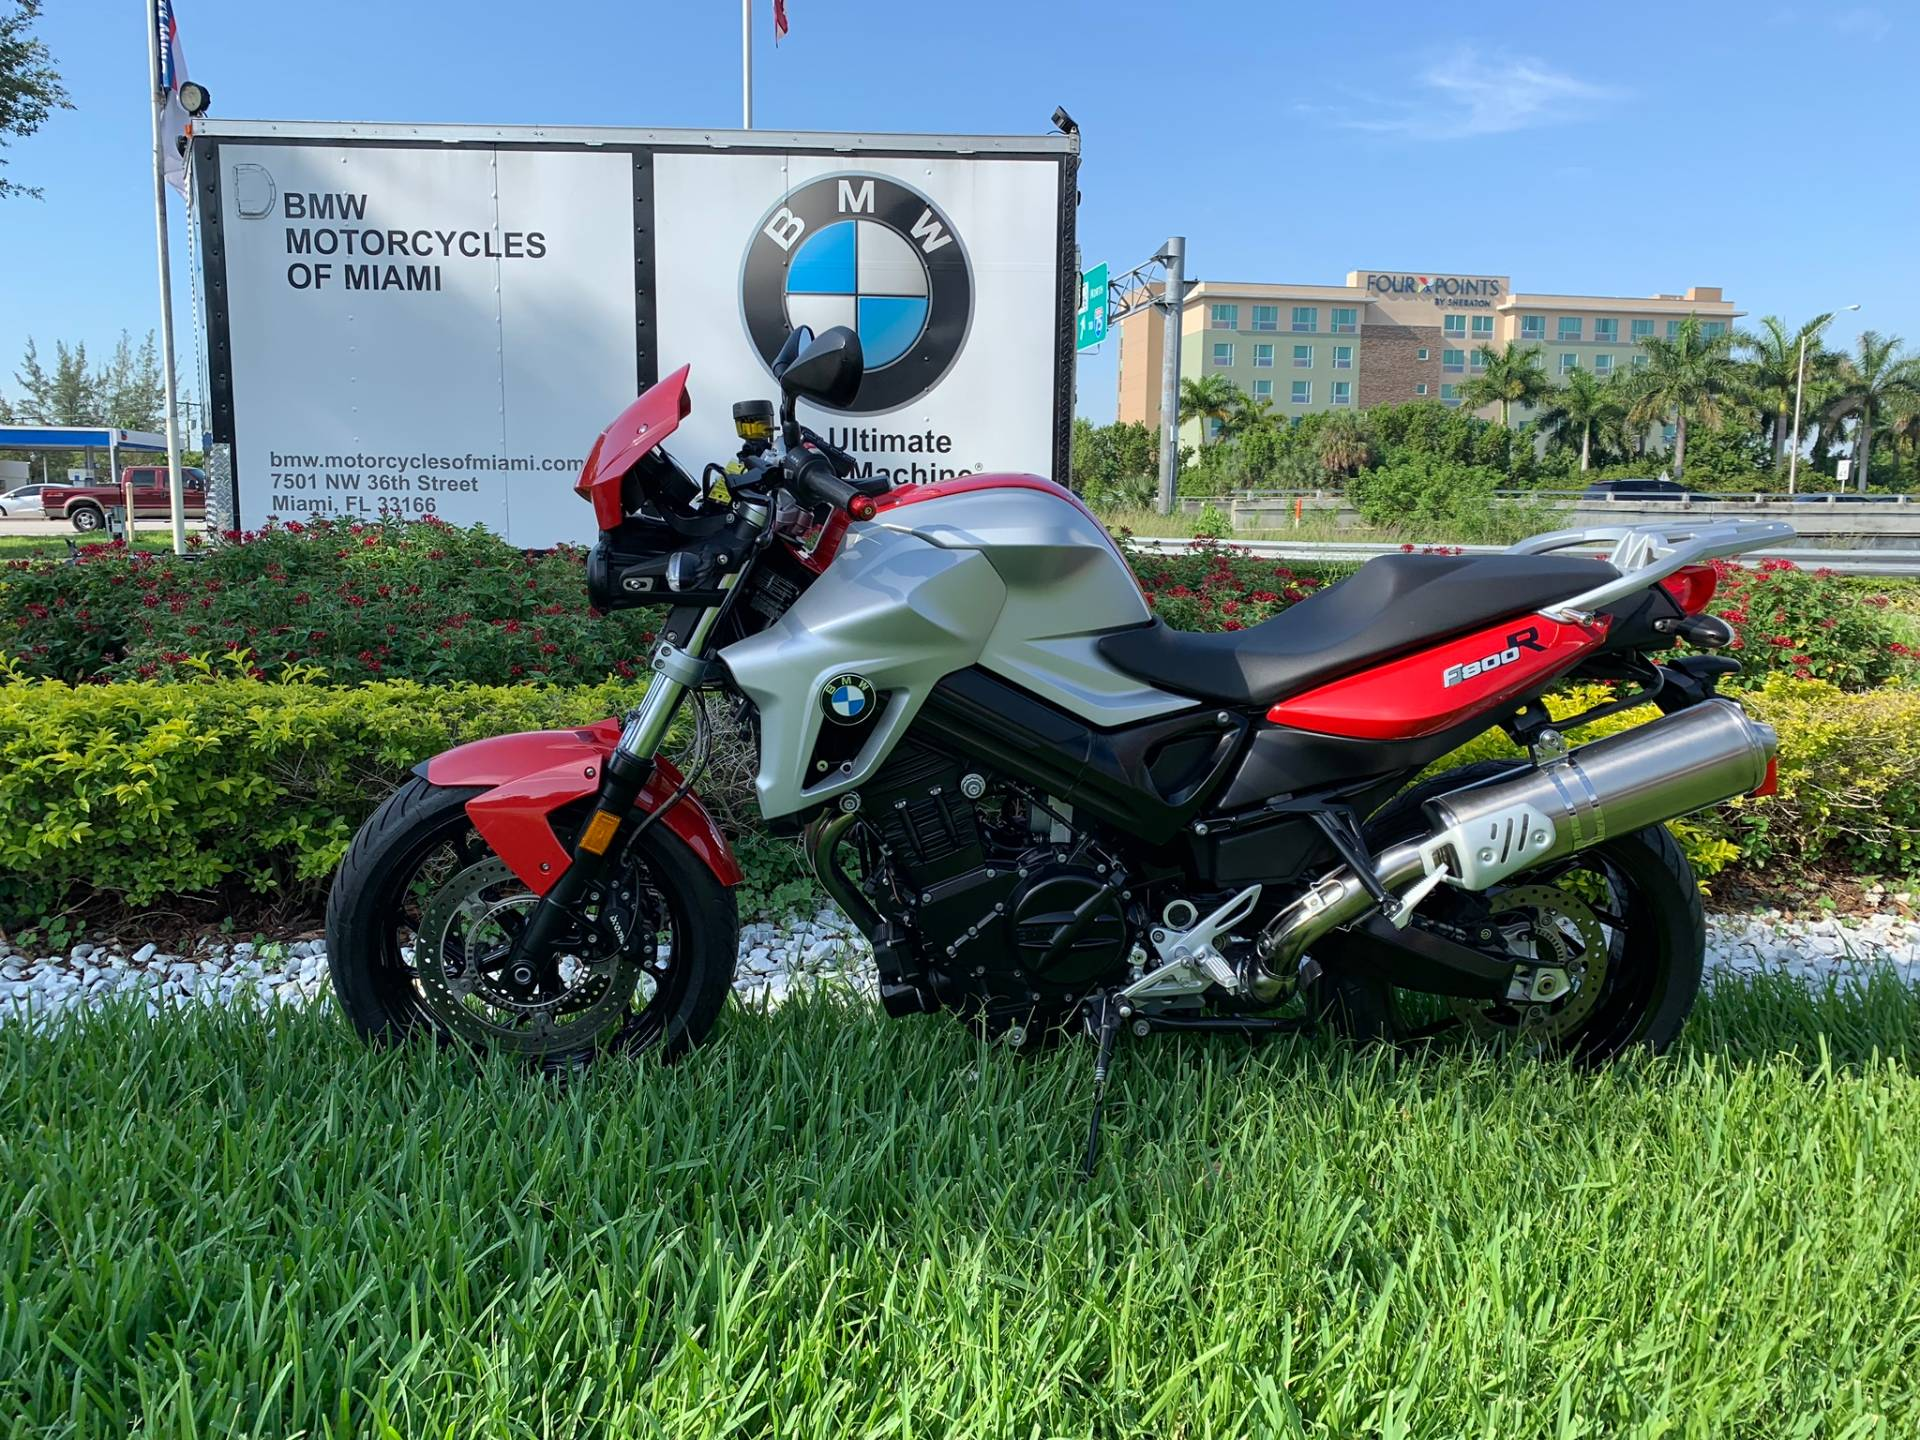 Used 2012 BMW F 800 R for sale, BMW F 800R for sale, BMW Motorcycle F800R, used BMW Roaster, Naked, 800, BMW. BMW Motorcycles of Miami, Motorcycles of Miami, Motorcycles Miami, New Motorcycles, Used Motorcycles, pre-owned. #BMWMotorcyclesOfMiami #MotorcyclesOfMiami. - Photo 1